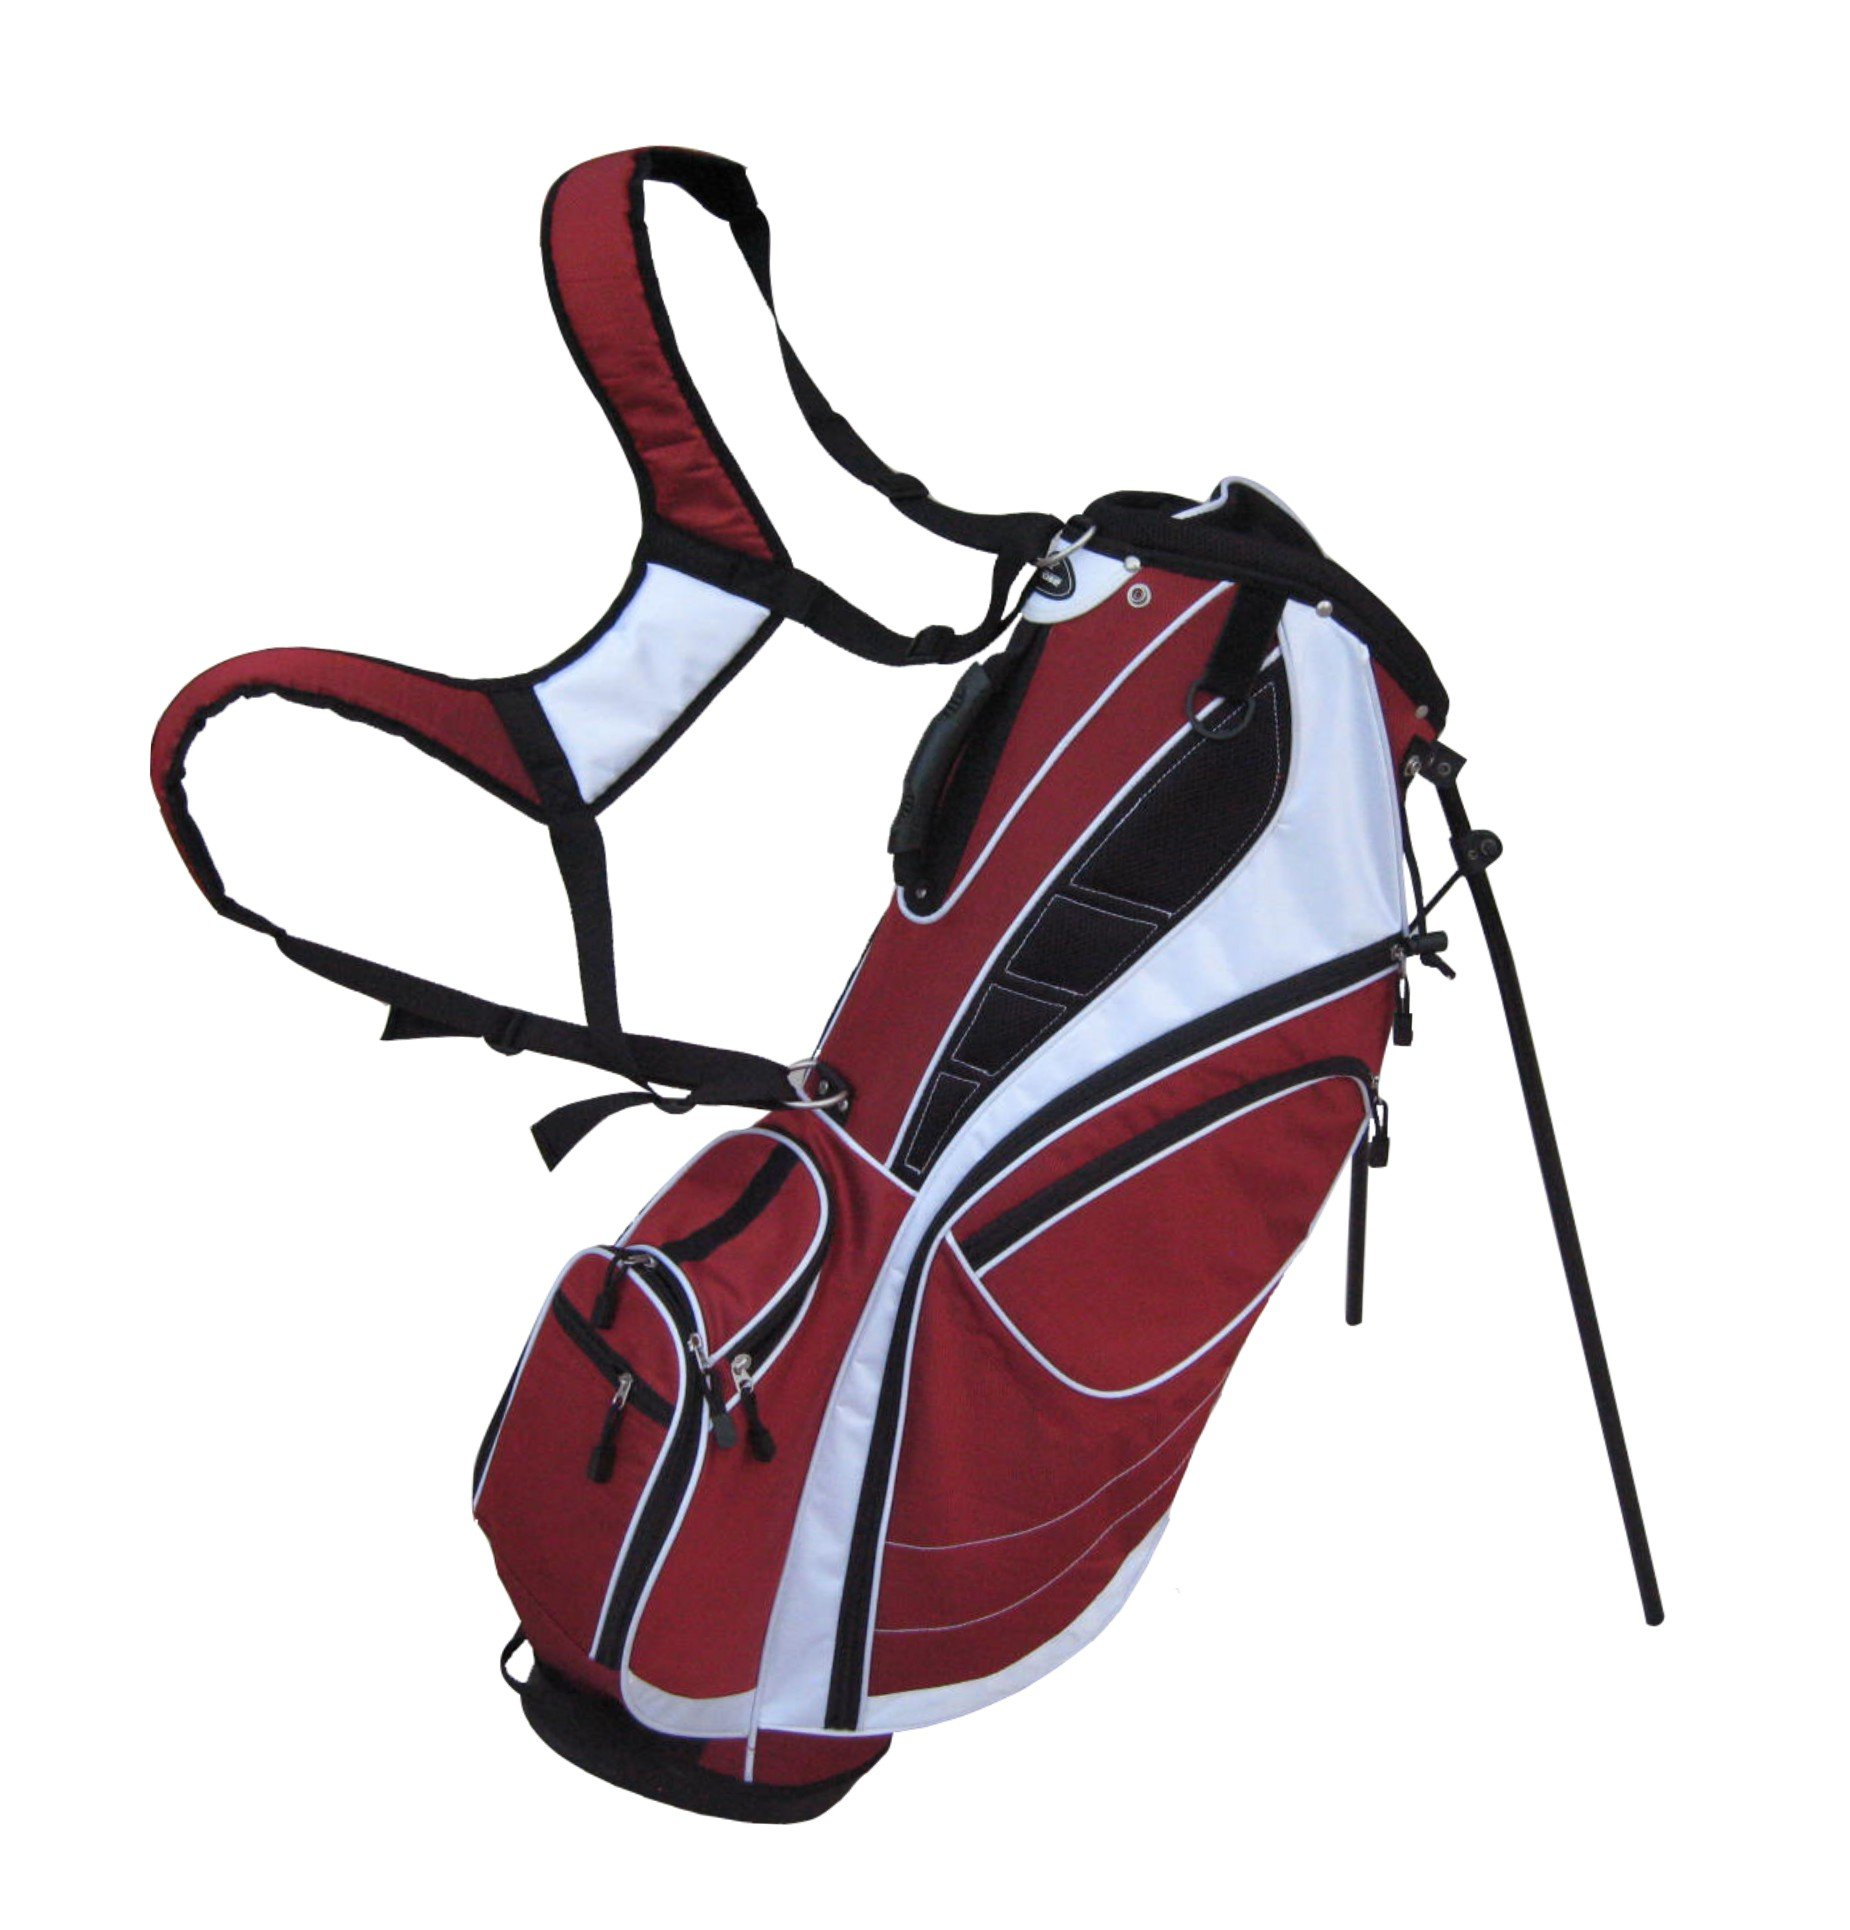 Precise Deluxe Stand Bag, Red